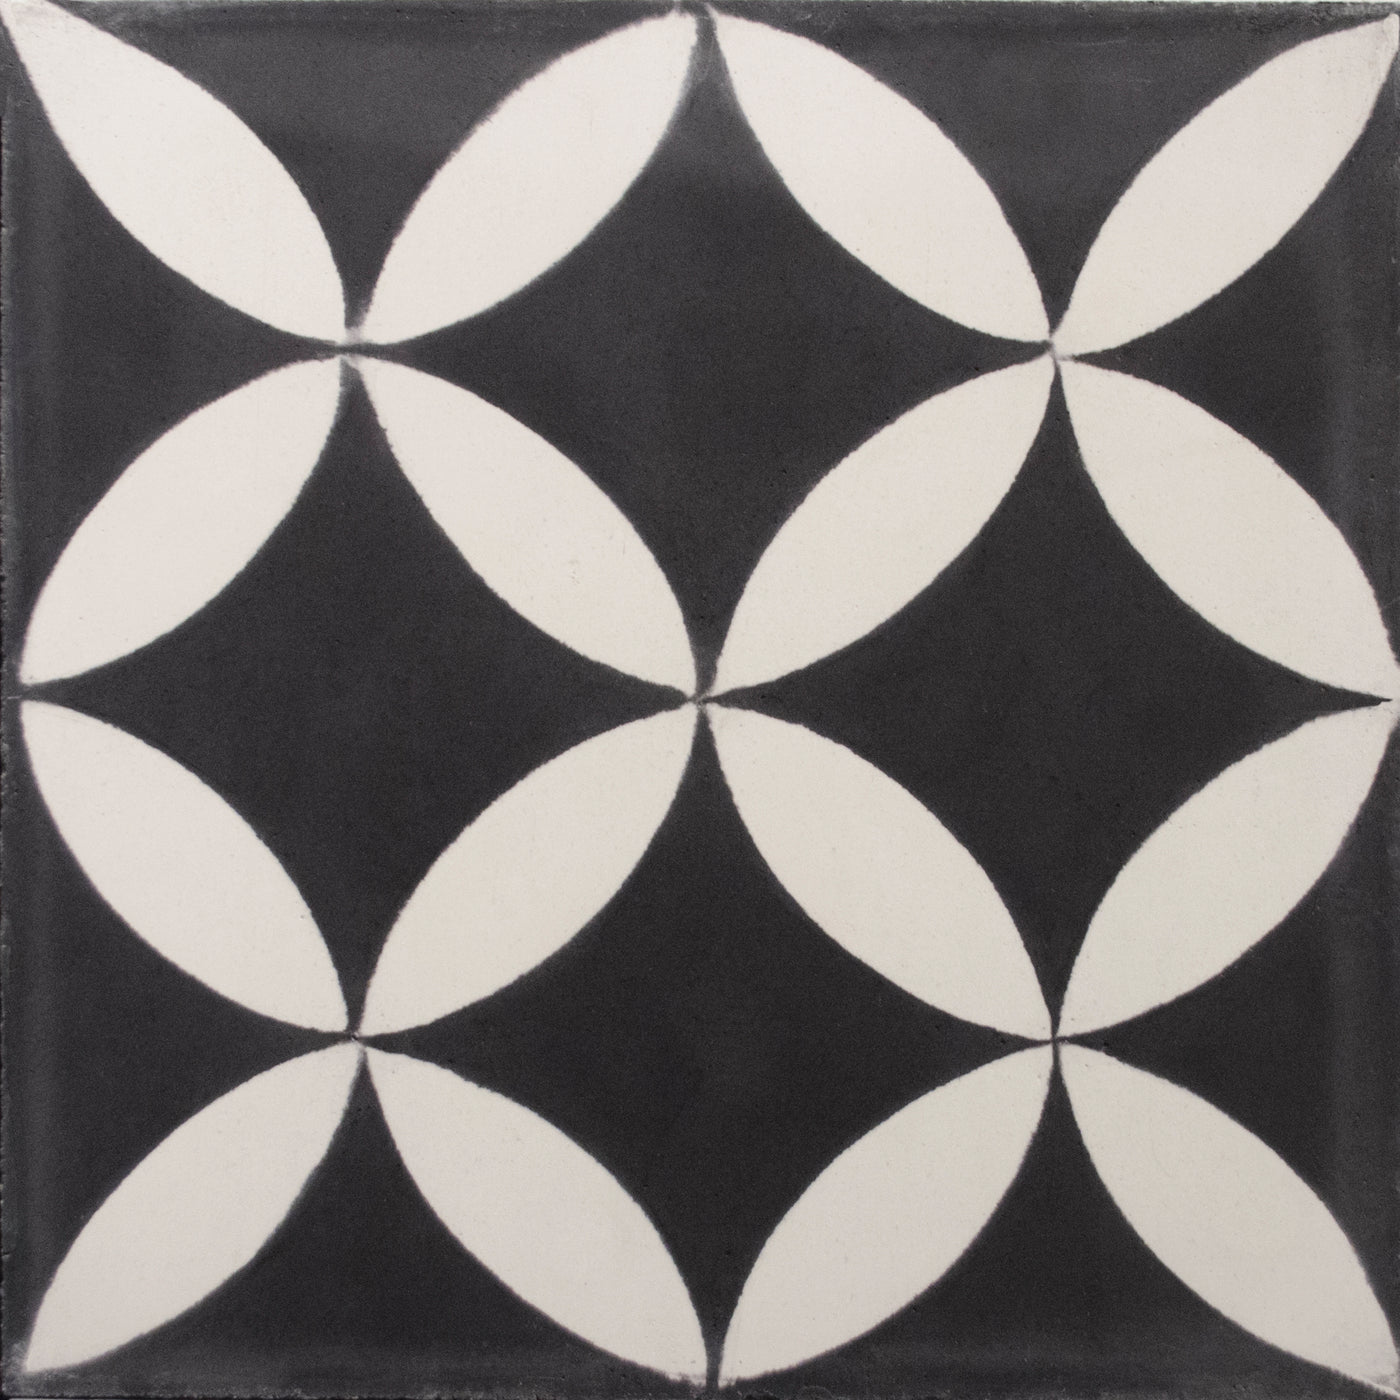 Square cement tile pattern Black/white